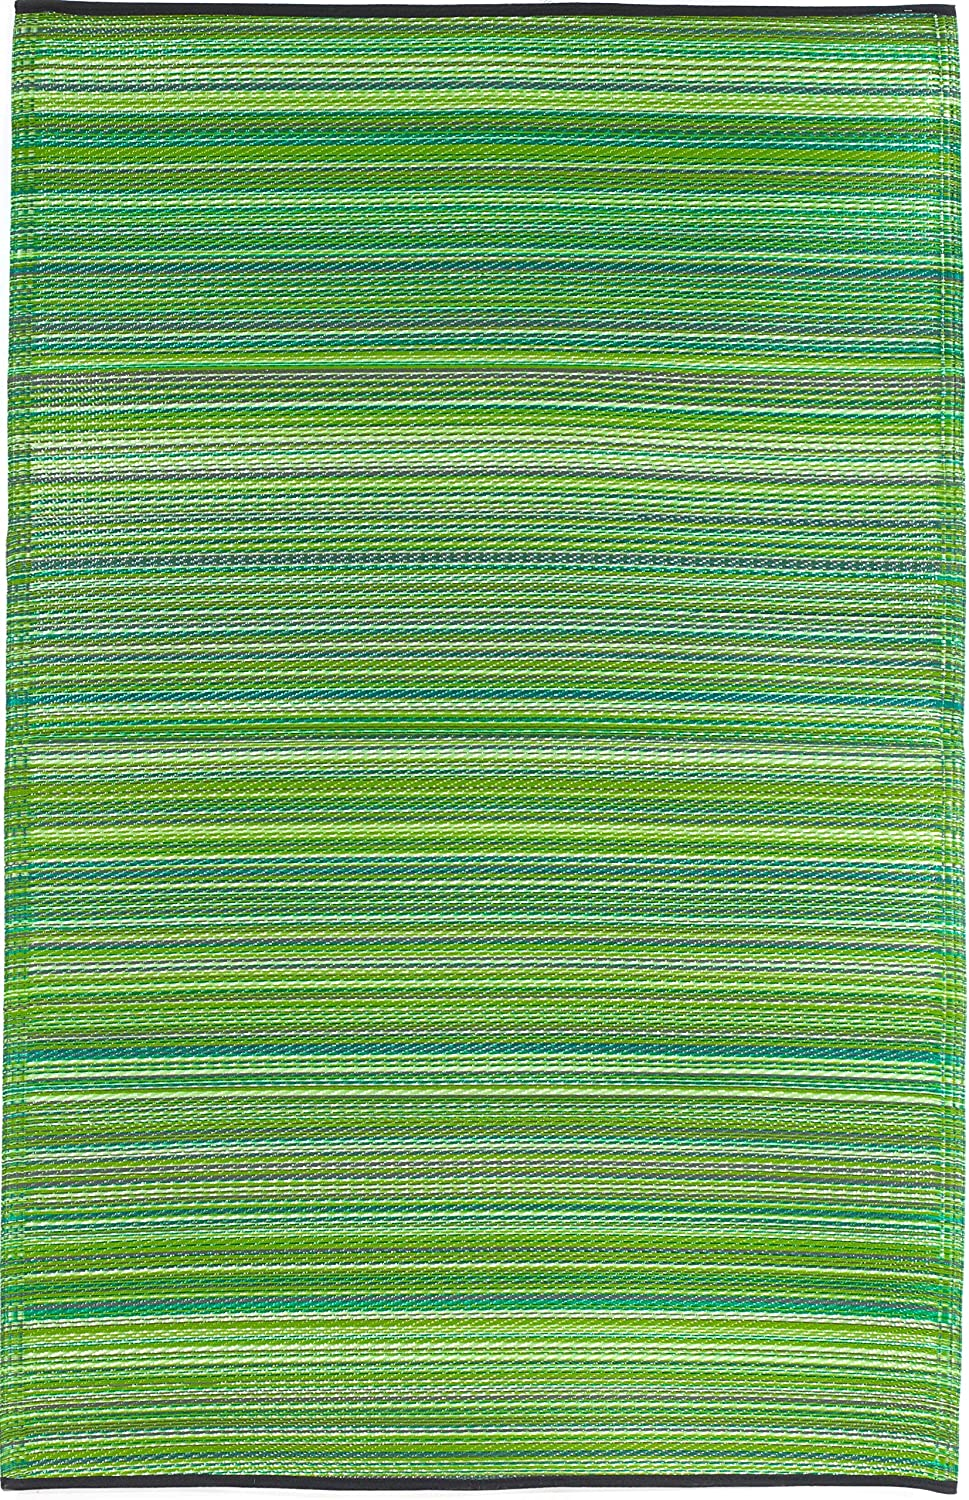 Fab Habitat Reversible Rugs   Indoor or Outdoor Use   Stain Resistant, Easy to Clean Weather Resistant Floor Mats   Cancun - Green, 6' x 9'